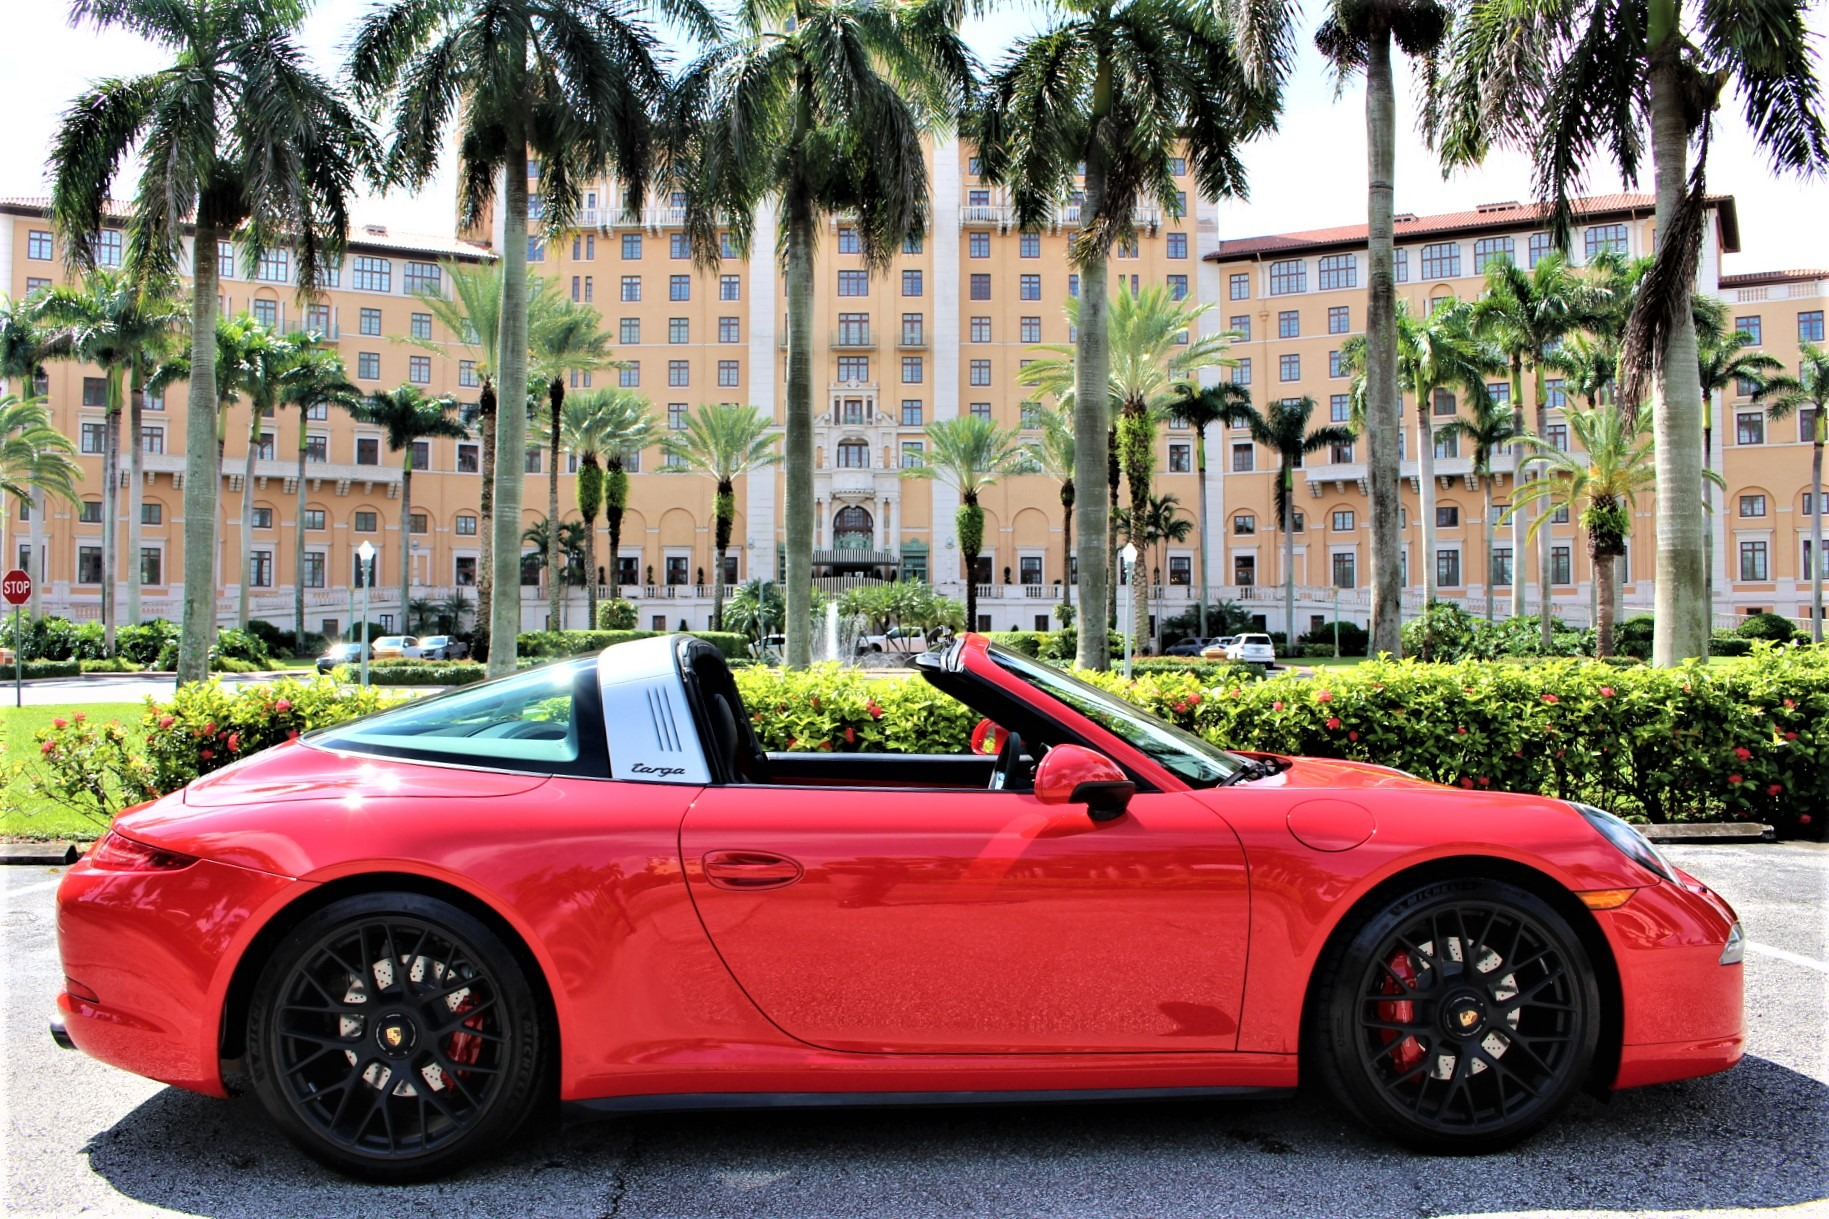 Used 2016 Porsche 911 Targa 4 GTS for sale Sold at The Gables Sports Cars in Miami FL 33146 3